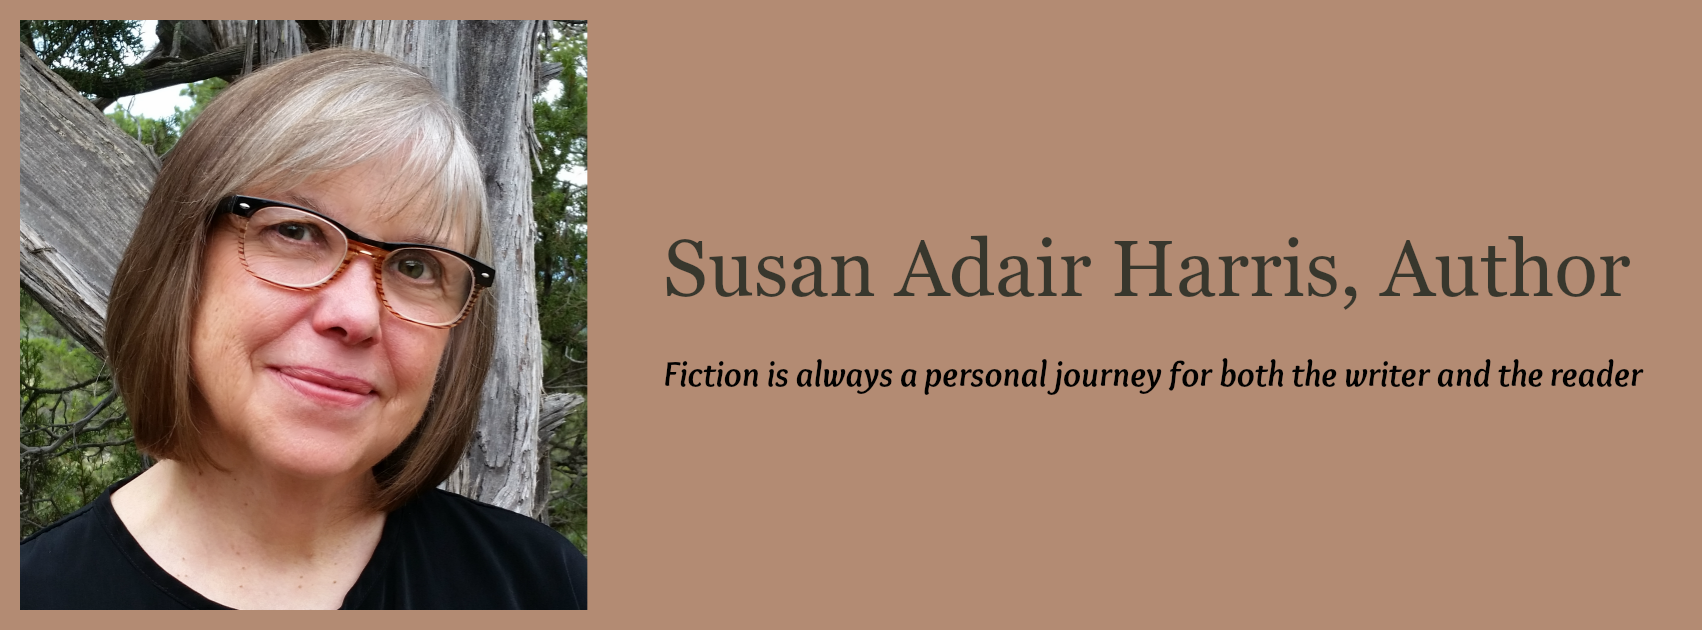 Susan Adair Harris, Author